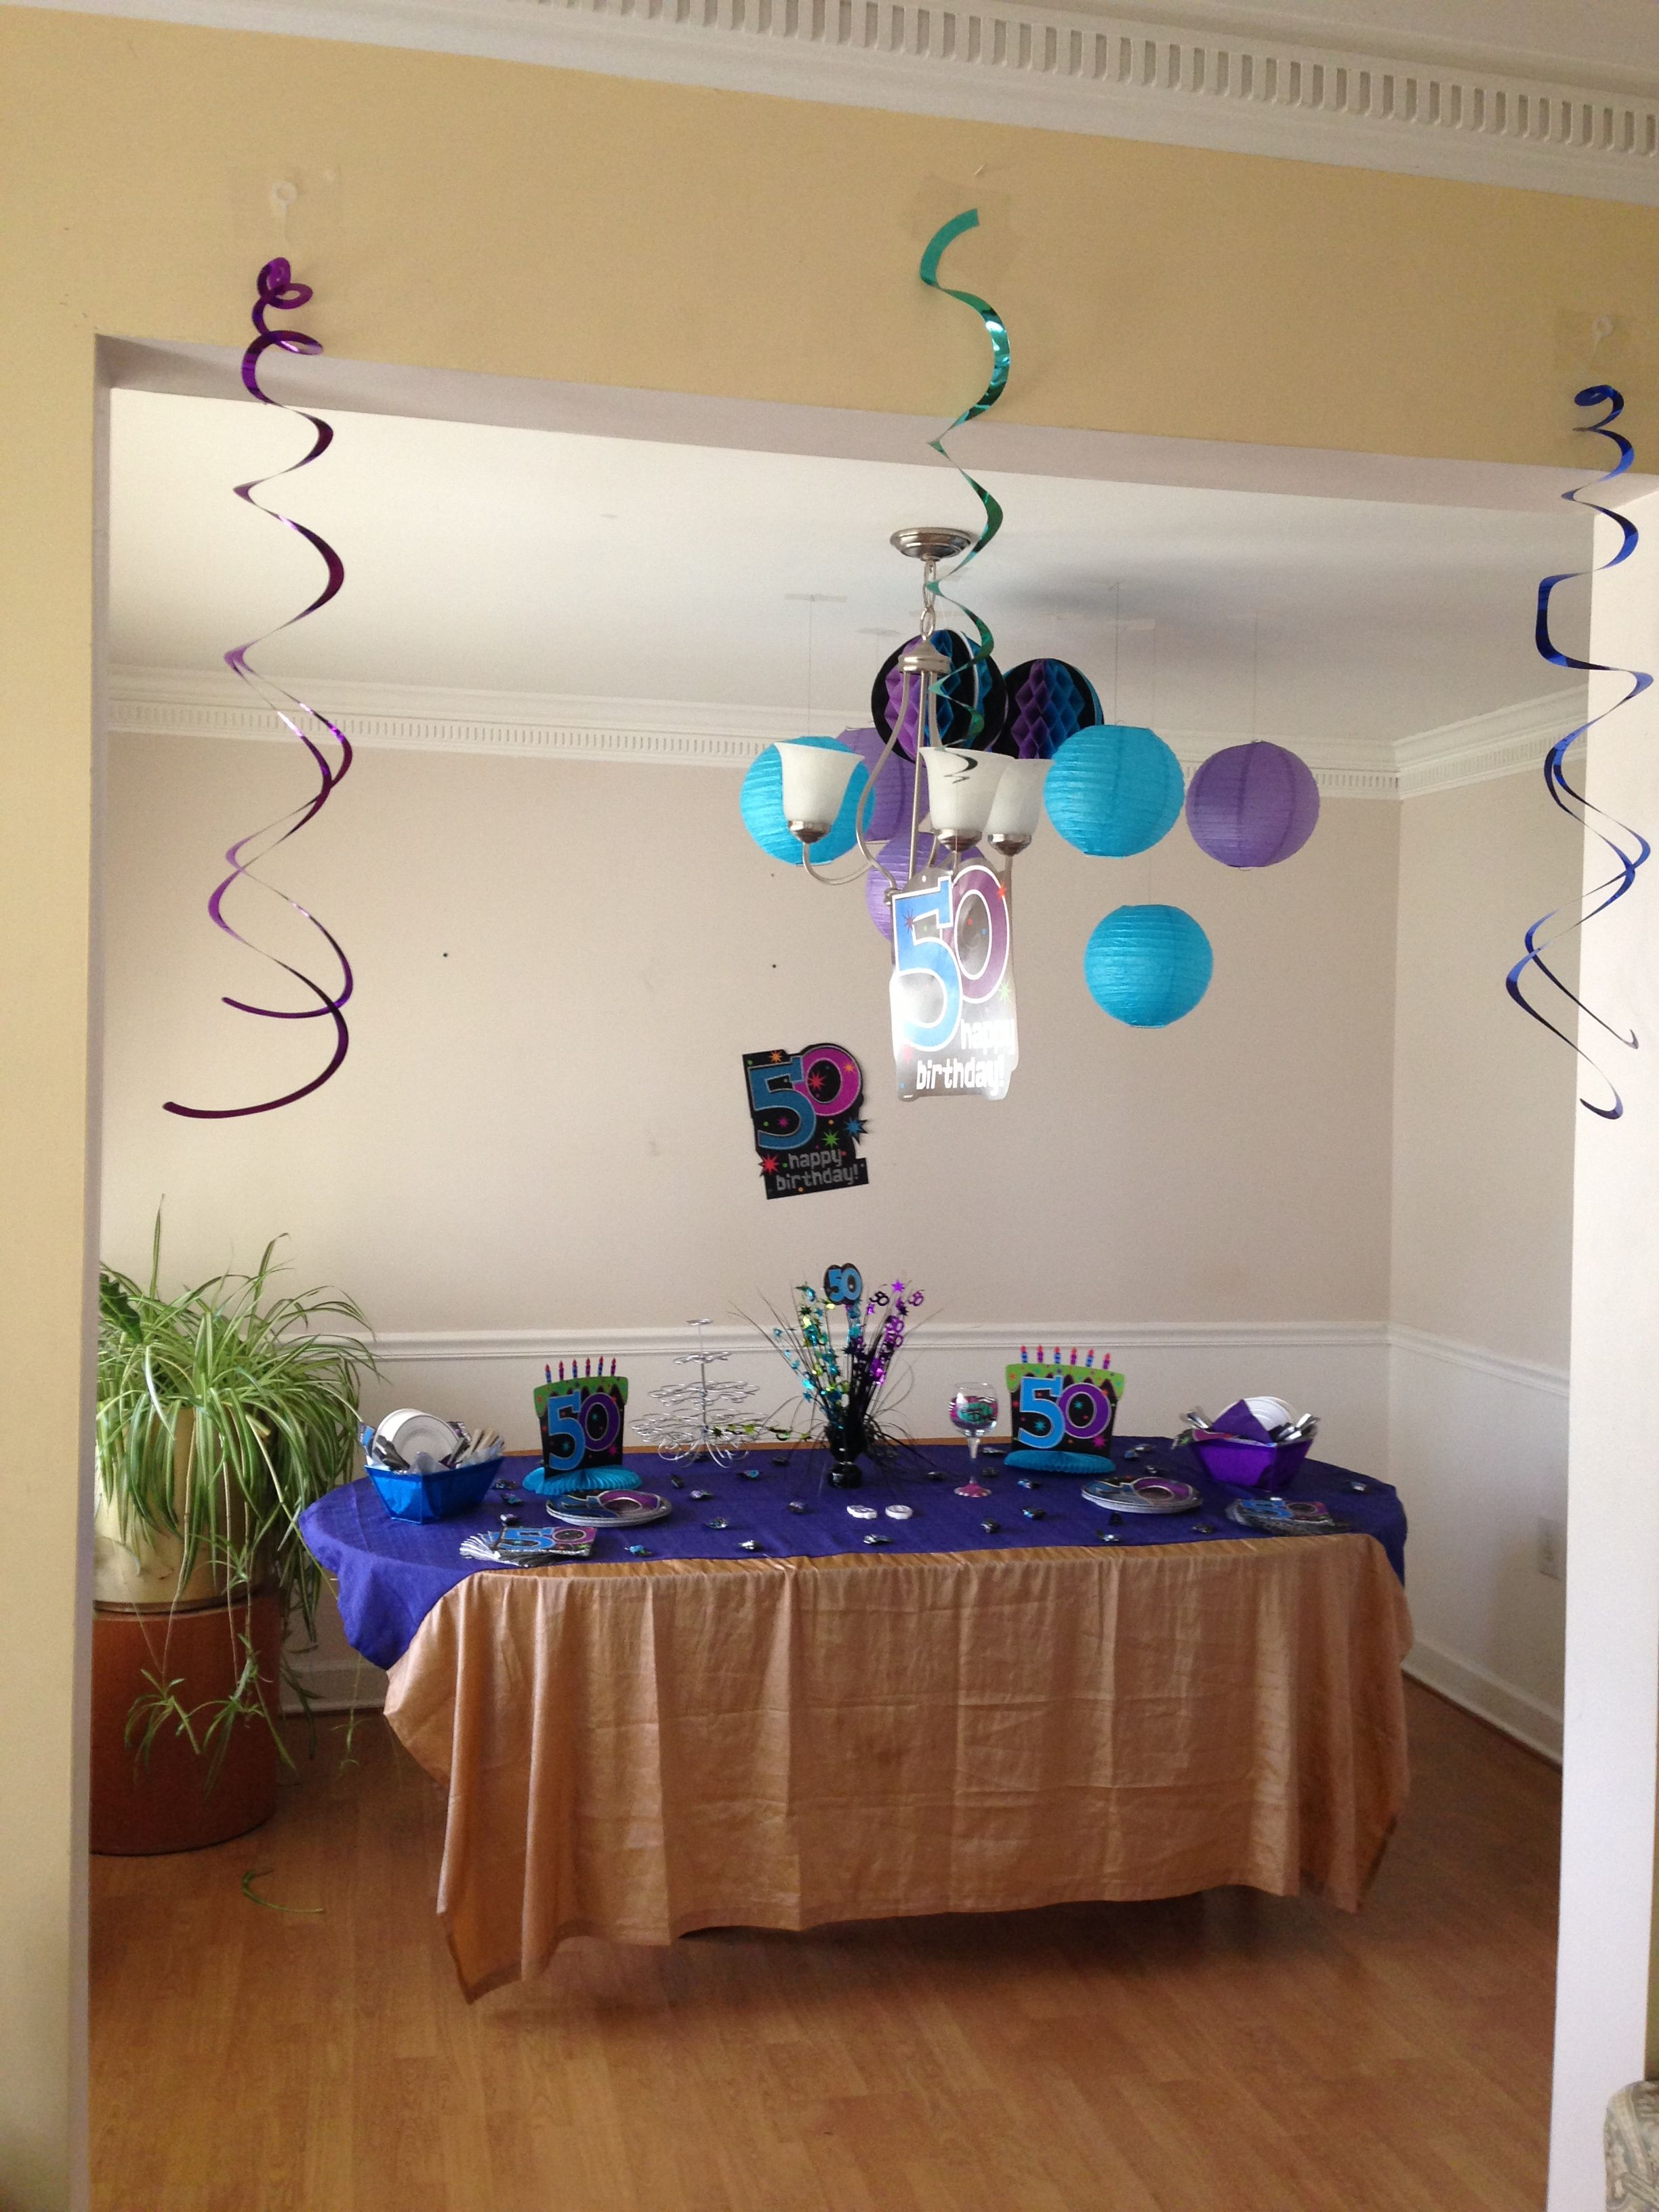 50th Birthday Decor Decorations Dad Ideas Baby Party